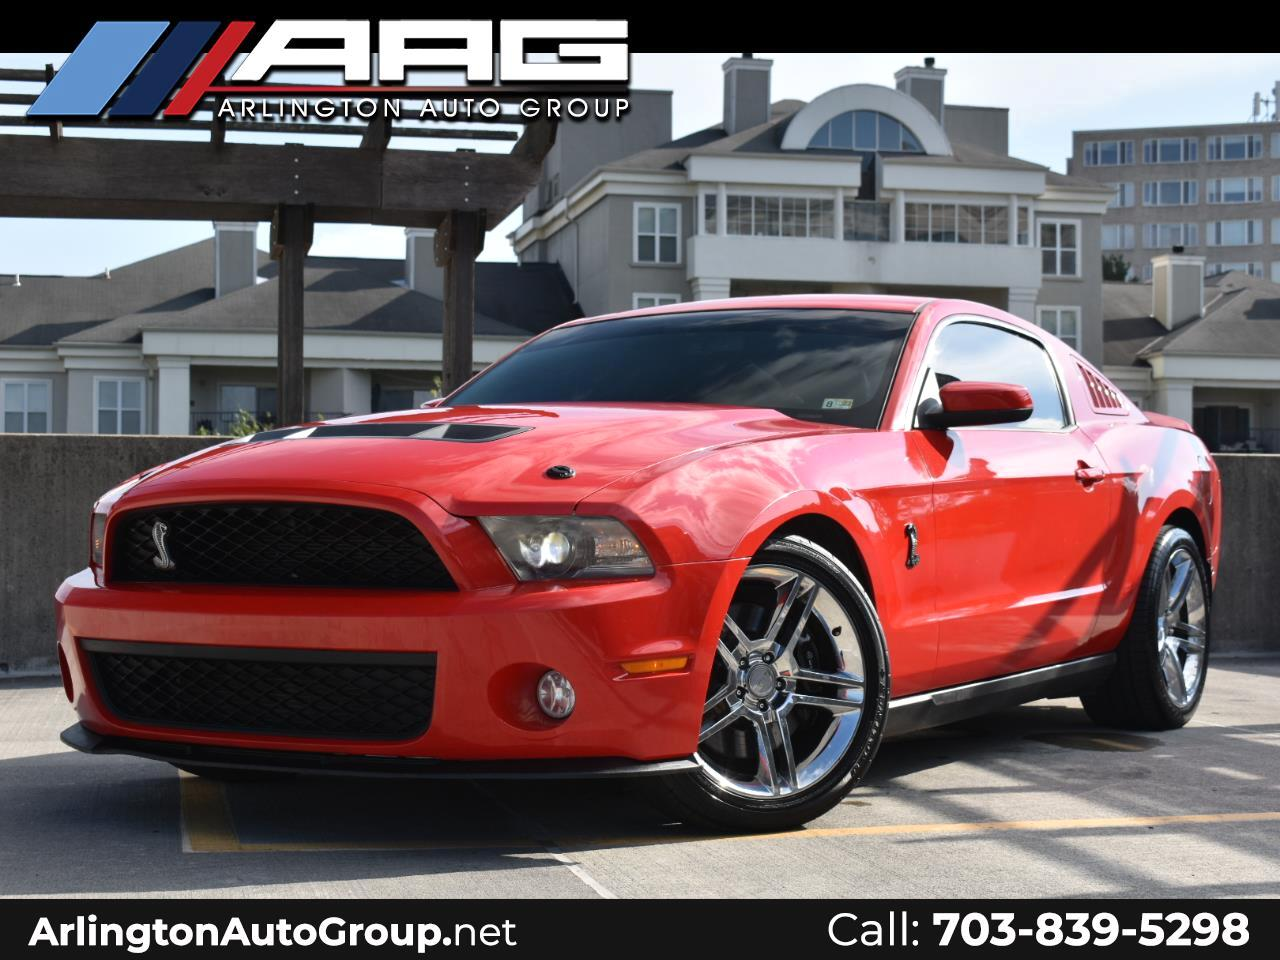 Ford Mustang 2dr Cpe Shelby GT500 2012